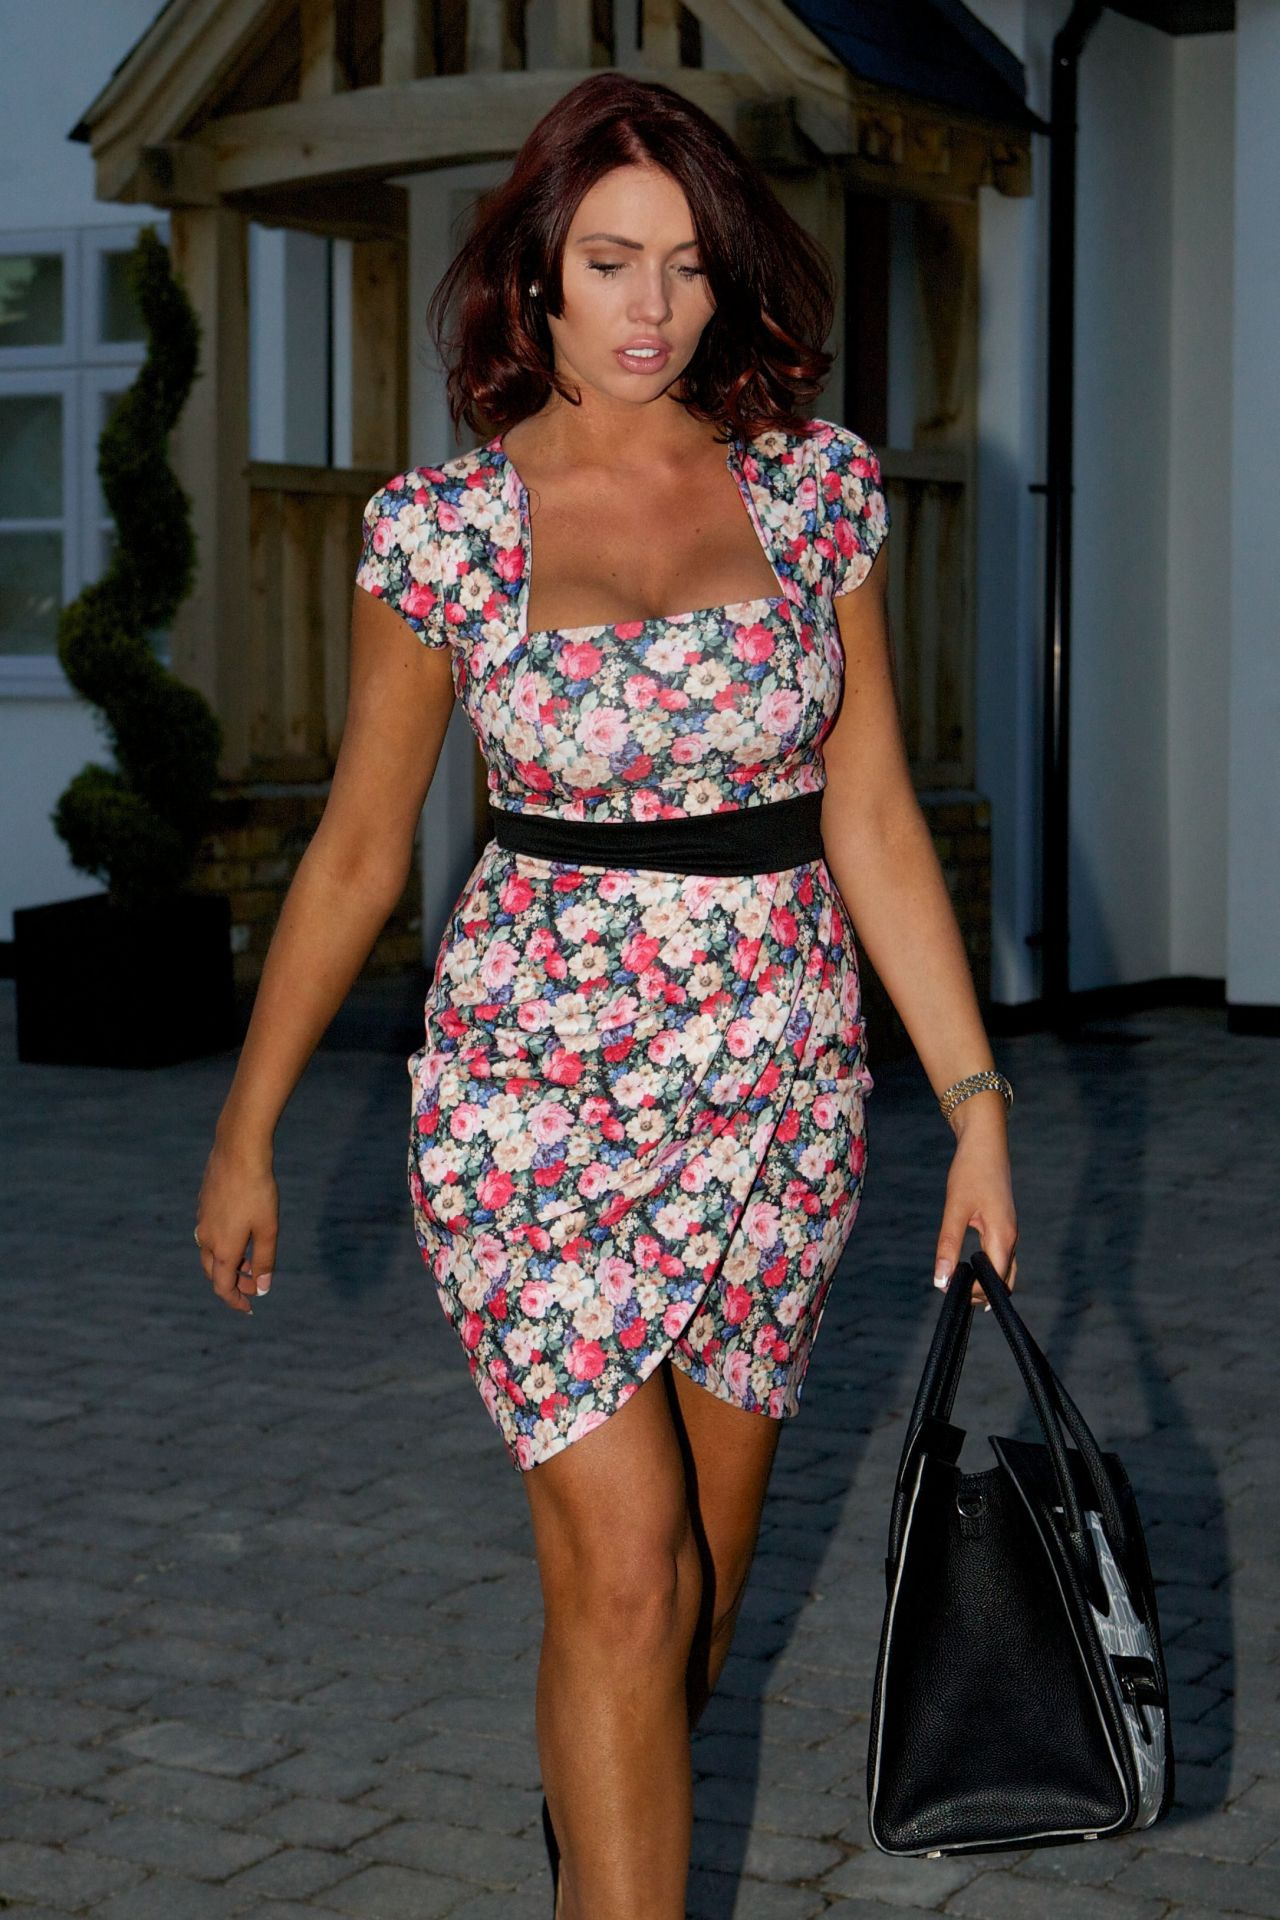 Fotos Amy Childs nudes (75 foto and video), Topless, Leaked, Instagram, legs 2015